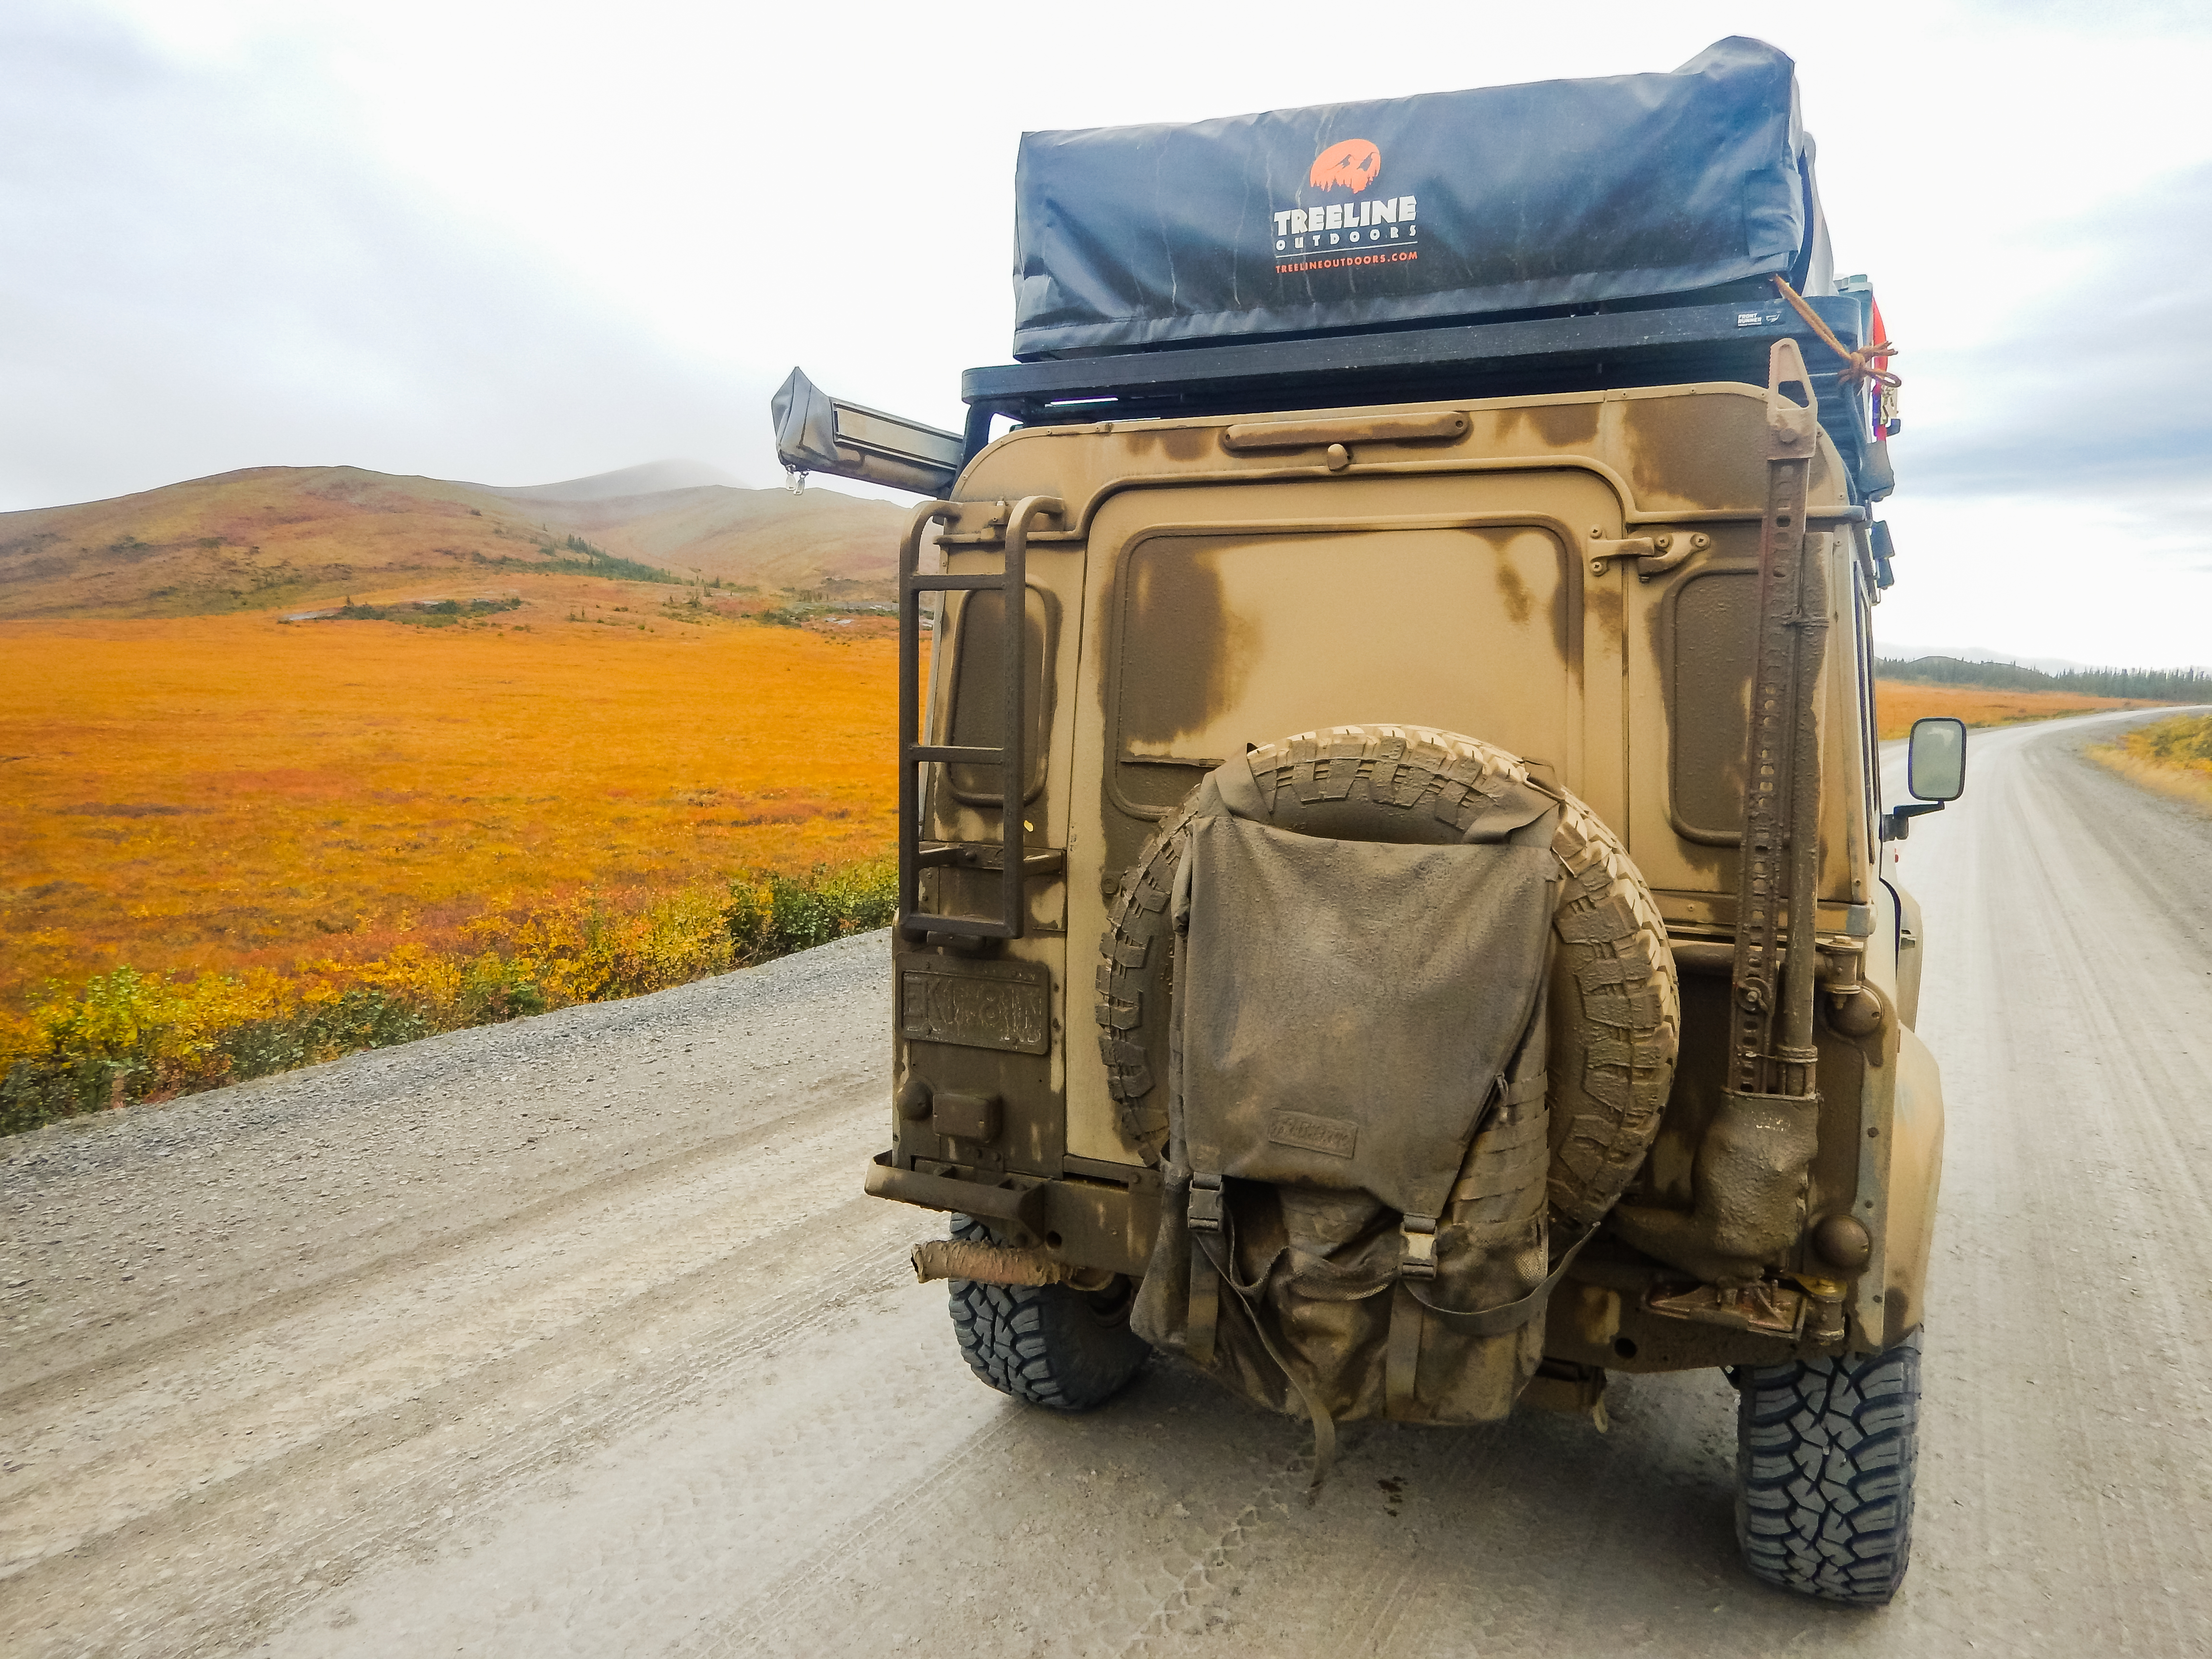 Crankshaft Chronicles Chris Walkers Land Rover Defender 90 Auxiliary Fuse Box You Can Never Get Enough Of The Nw Territory Fall Colors And Dempster Mud